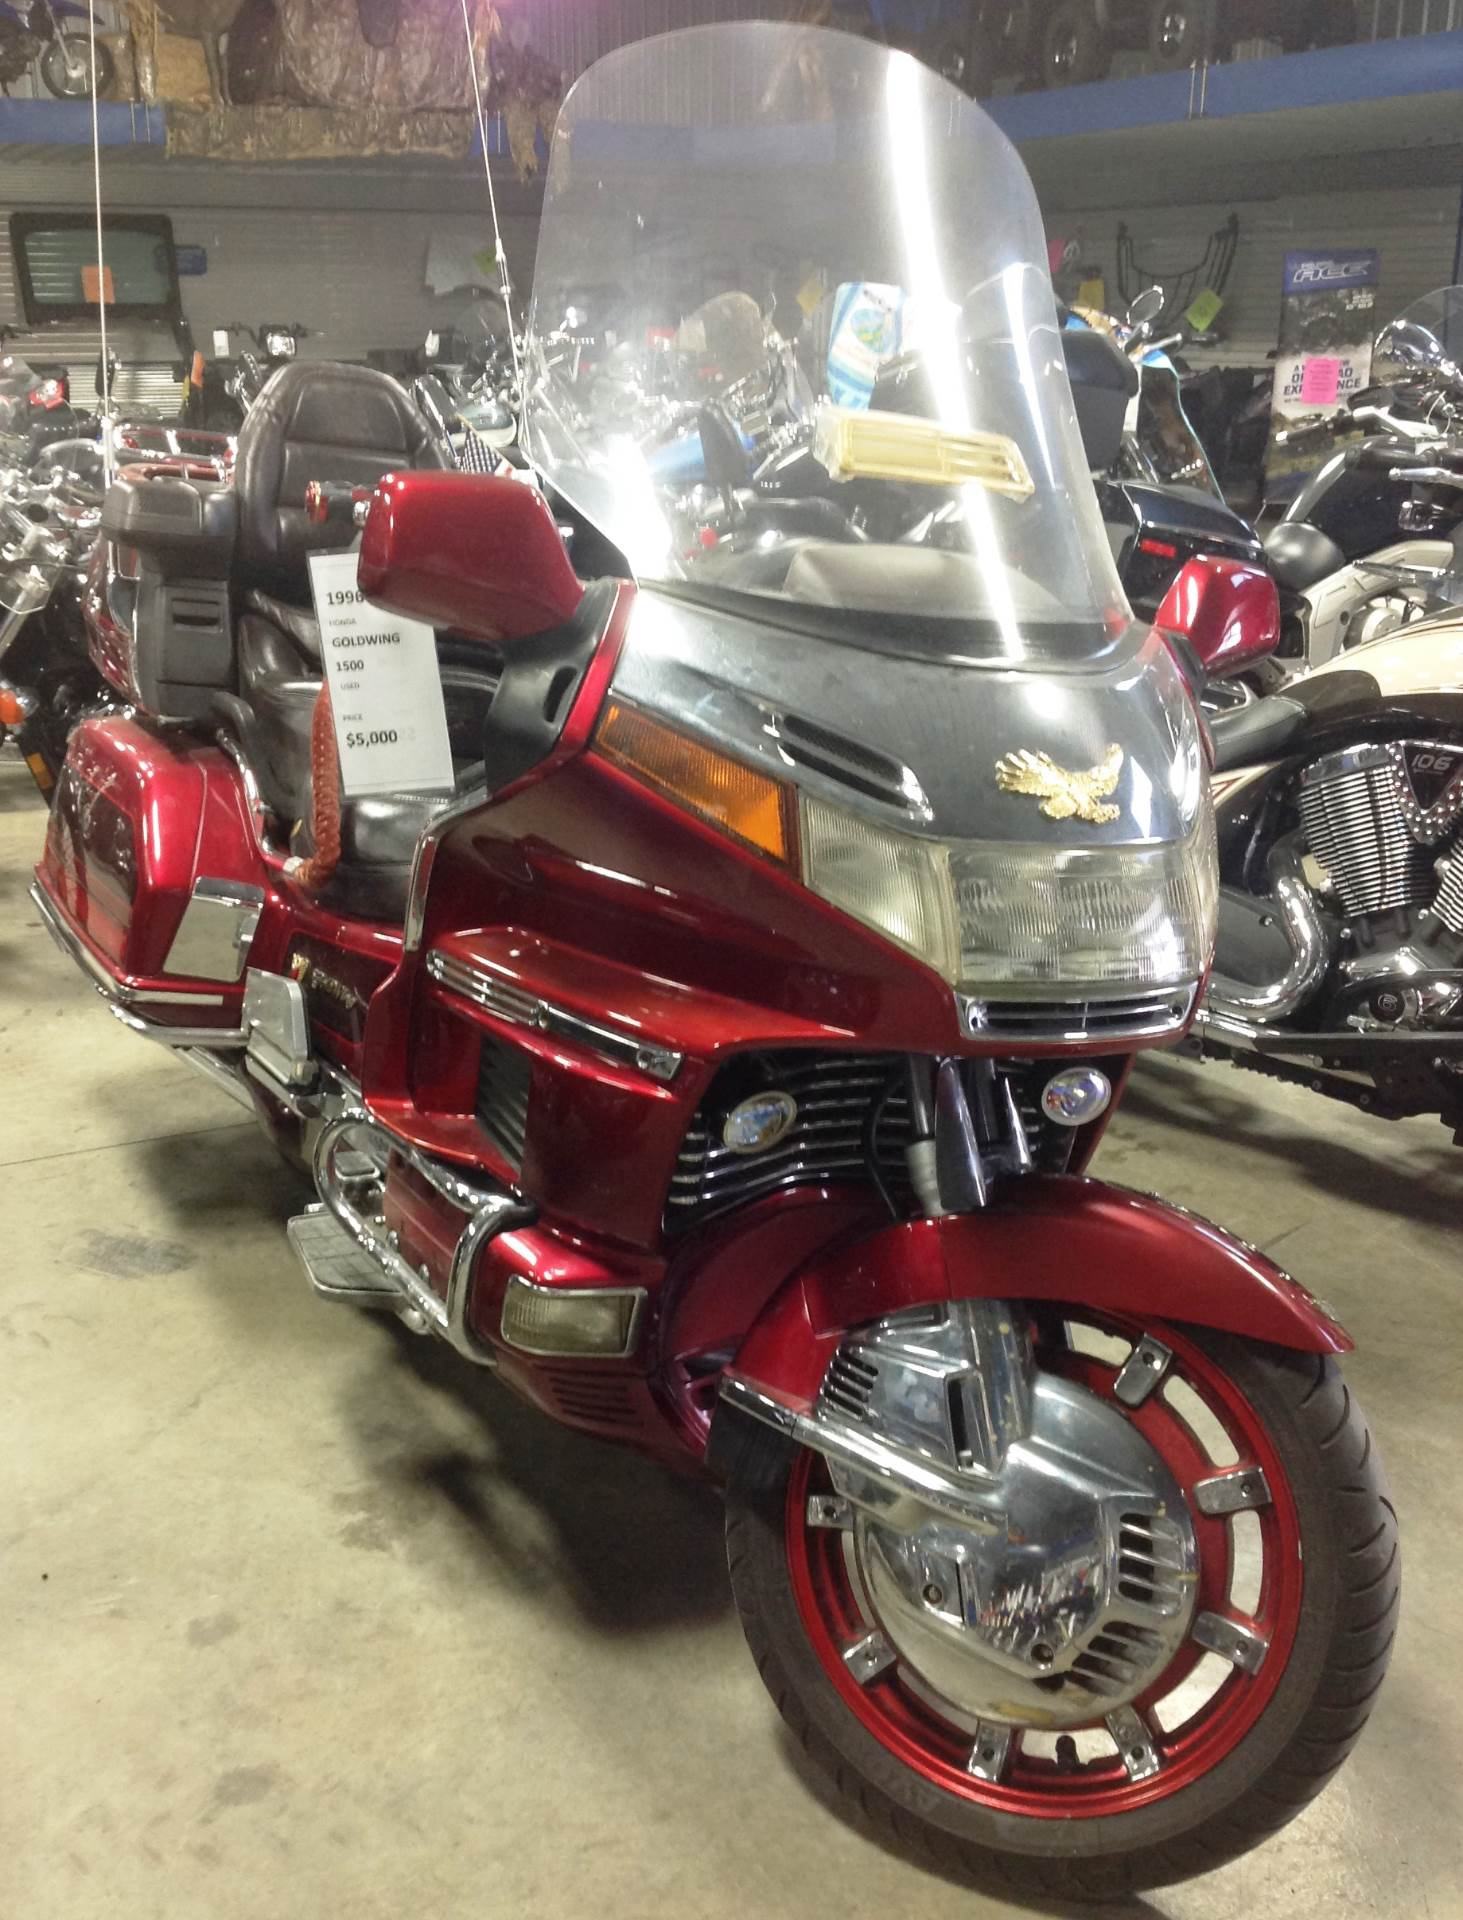 used 1996 honda goldwing 1500 motorcycles in ottumwa ia. Black Bedroom Furniture Sets. Home Design Ideas